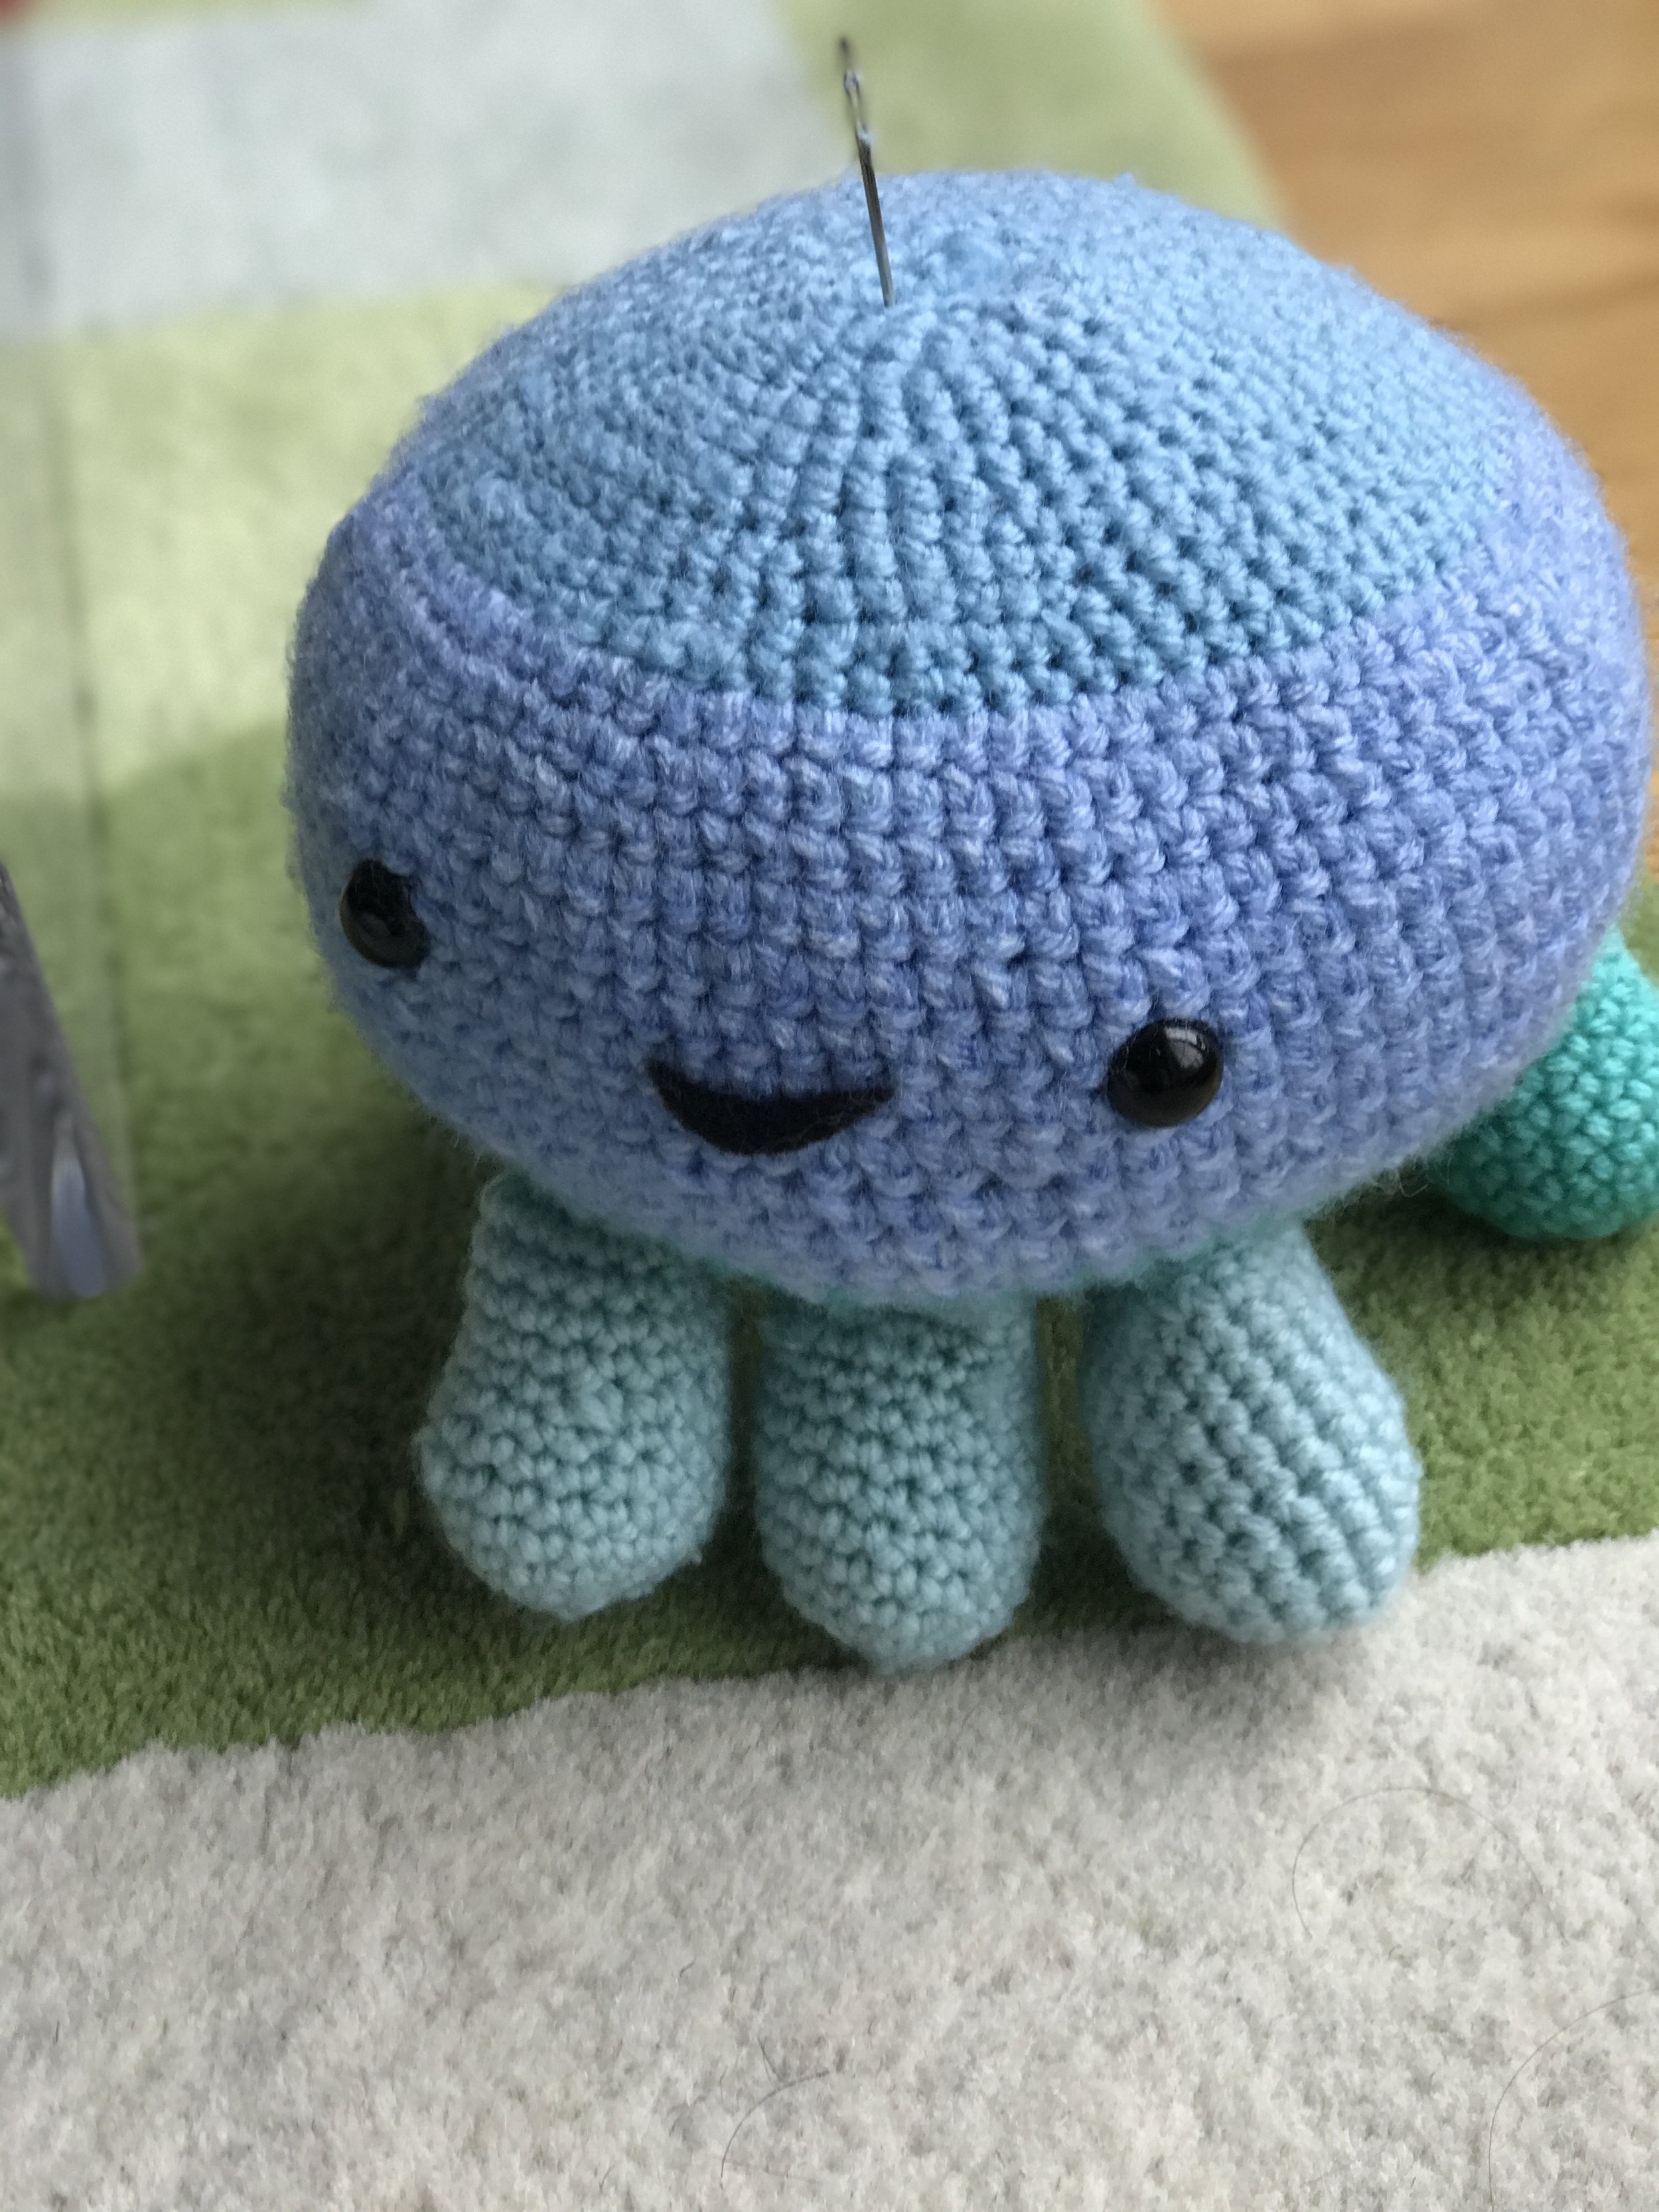 another pic of my octopus narhwal amigurumi gifted to my bestie's son for his 100th day celebration (red egg celebration)